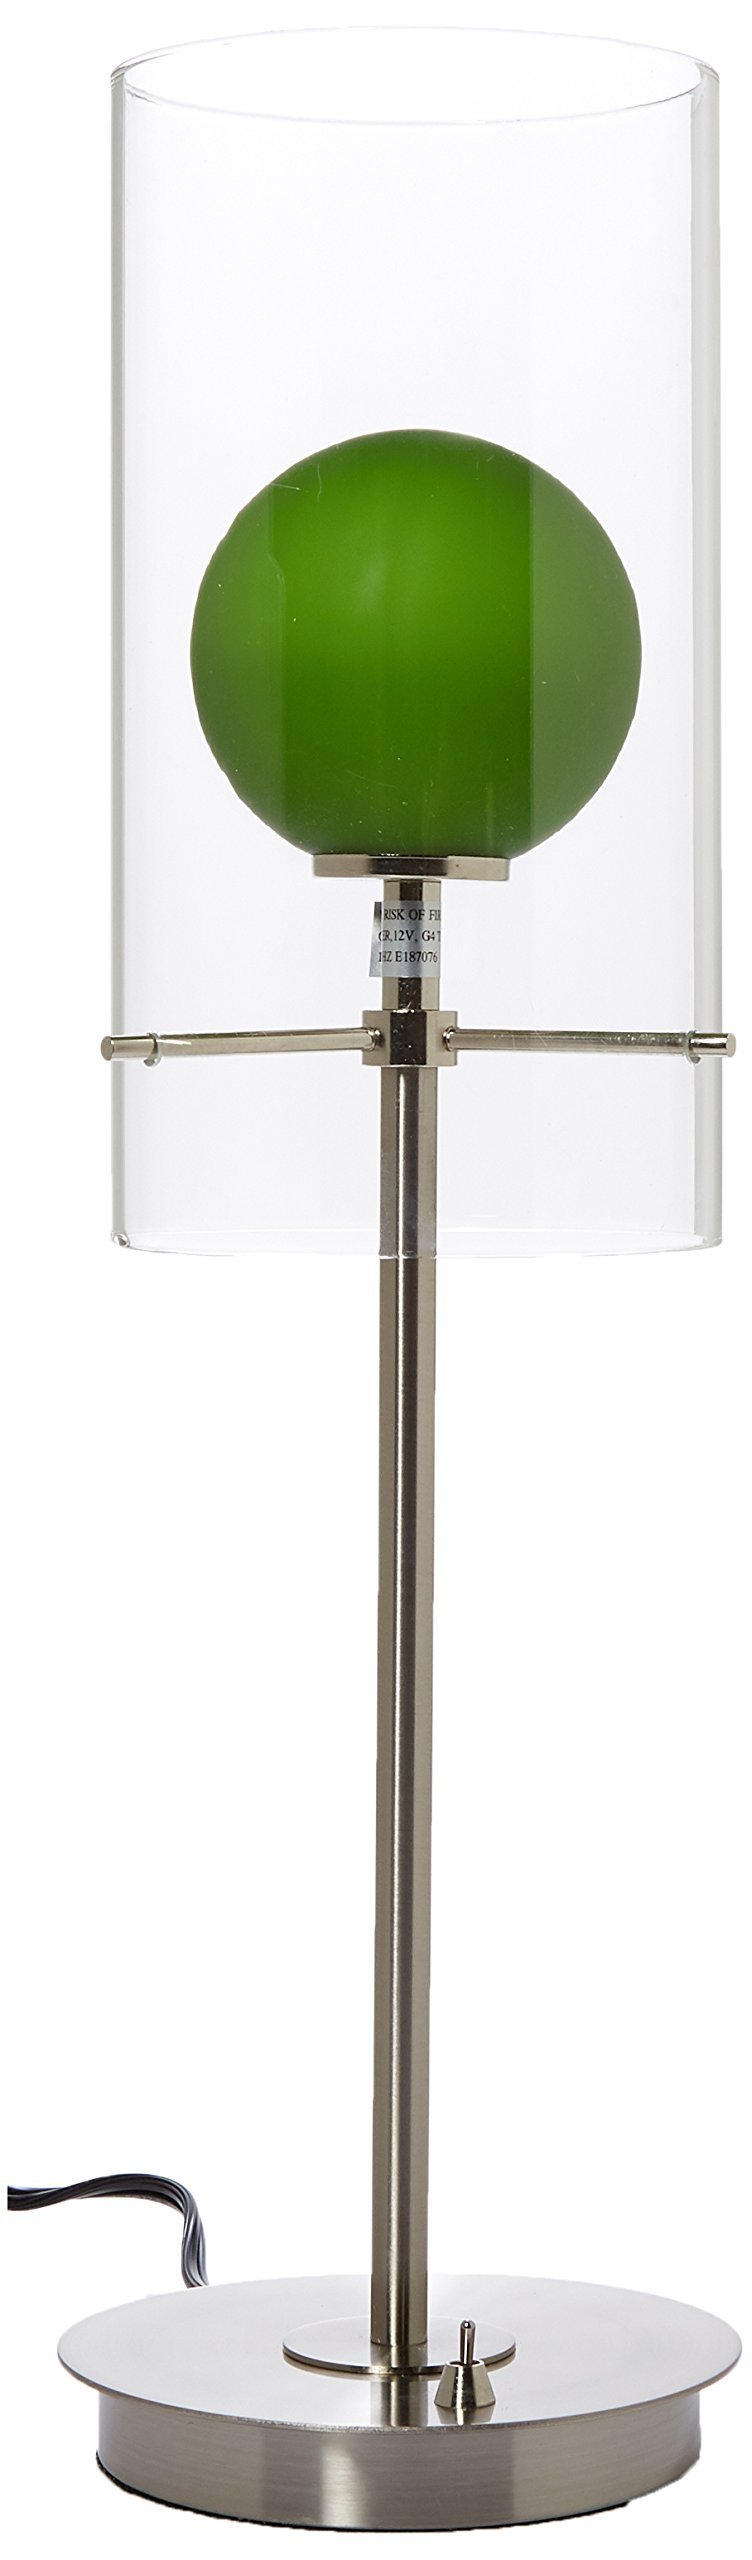 Lite Source LS-2149PS/L/GRN Burst Double Glass Table Lamp, Polished Steel with Light Green Inner Glass Shade, Multicolored